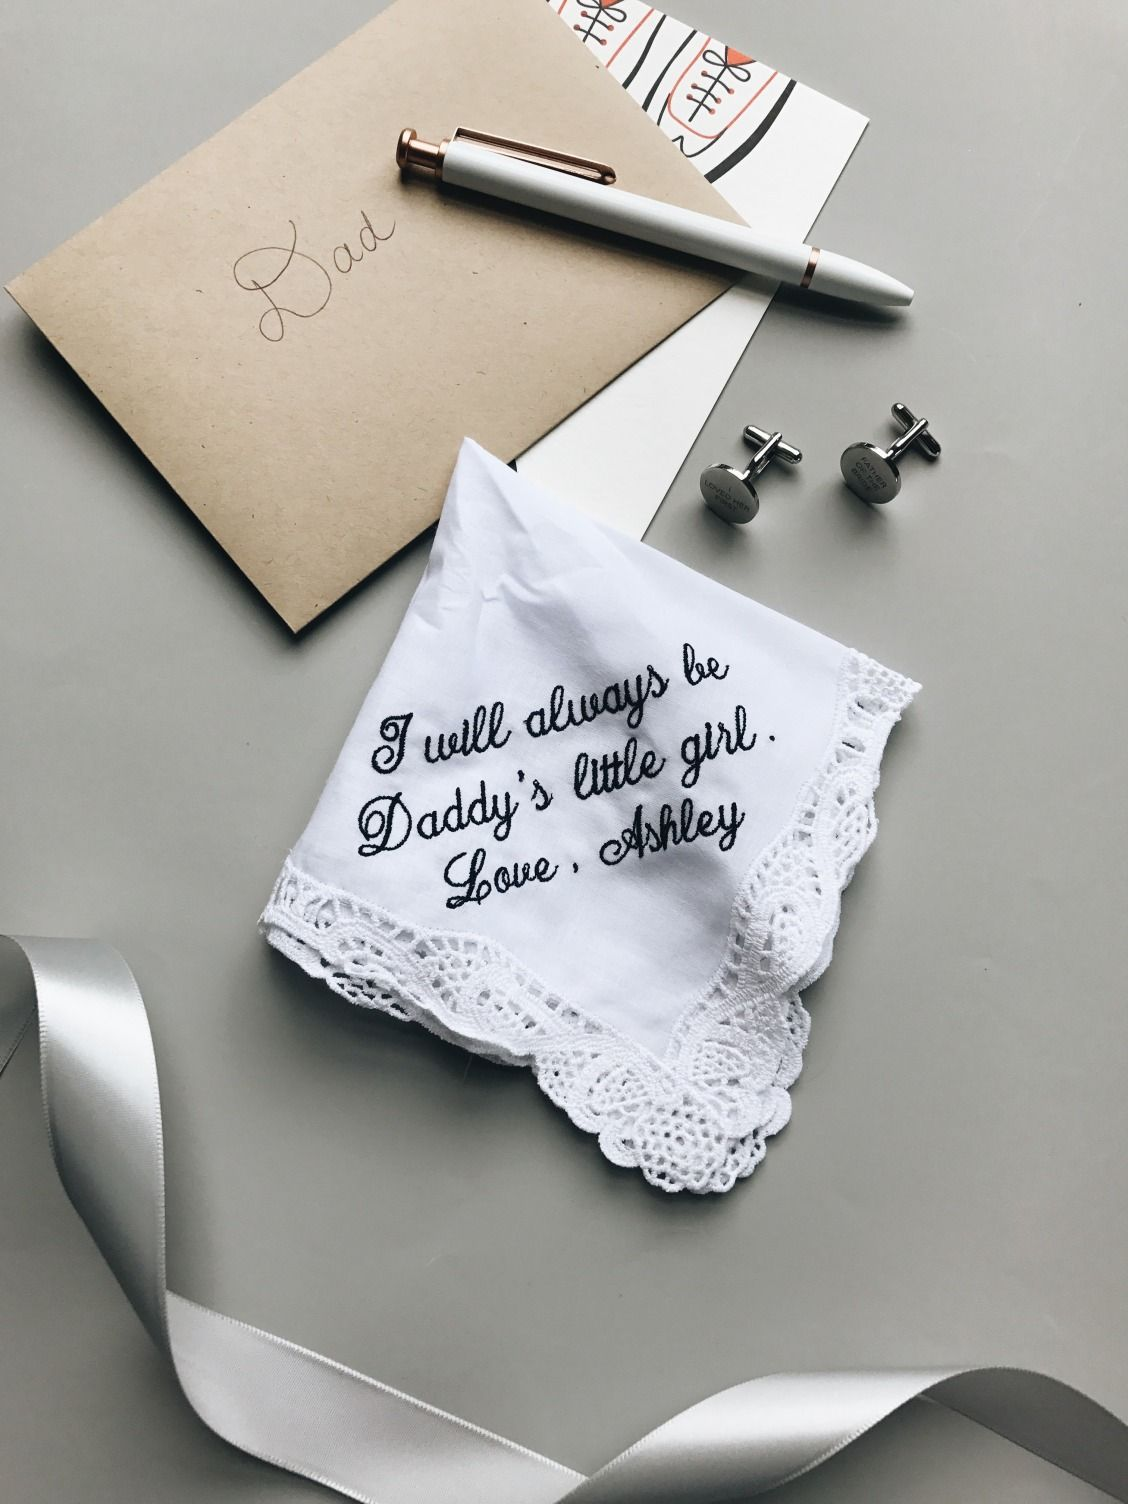 Wedding Gifts For Your Dad That Are Equally Sentimental And